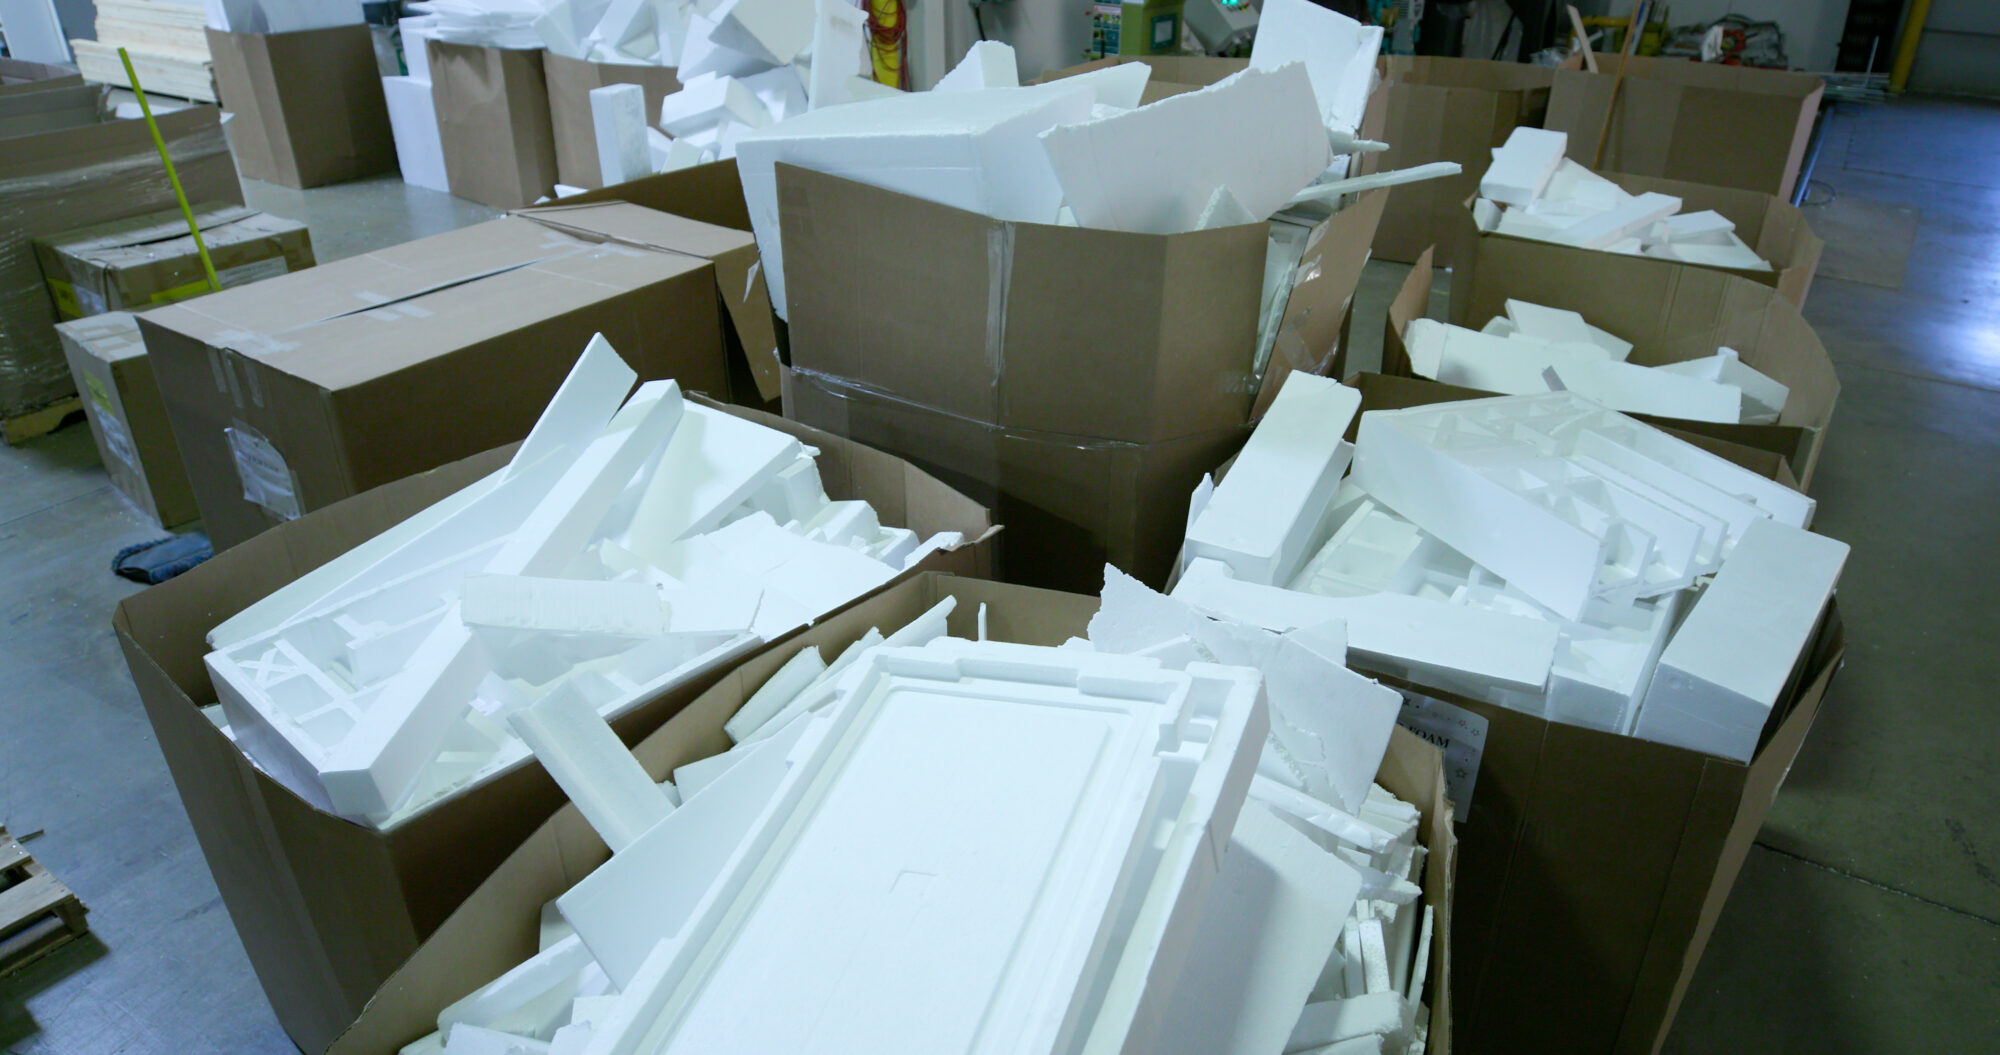 This image displays many cardboard boxes filled with Styrofoam pieces.